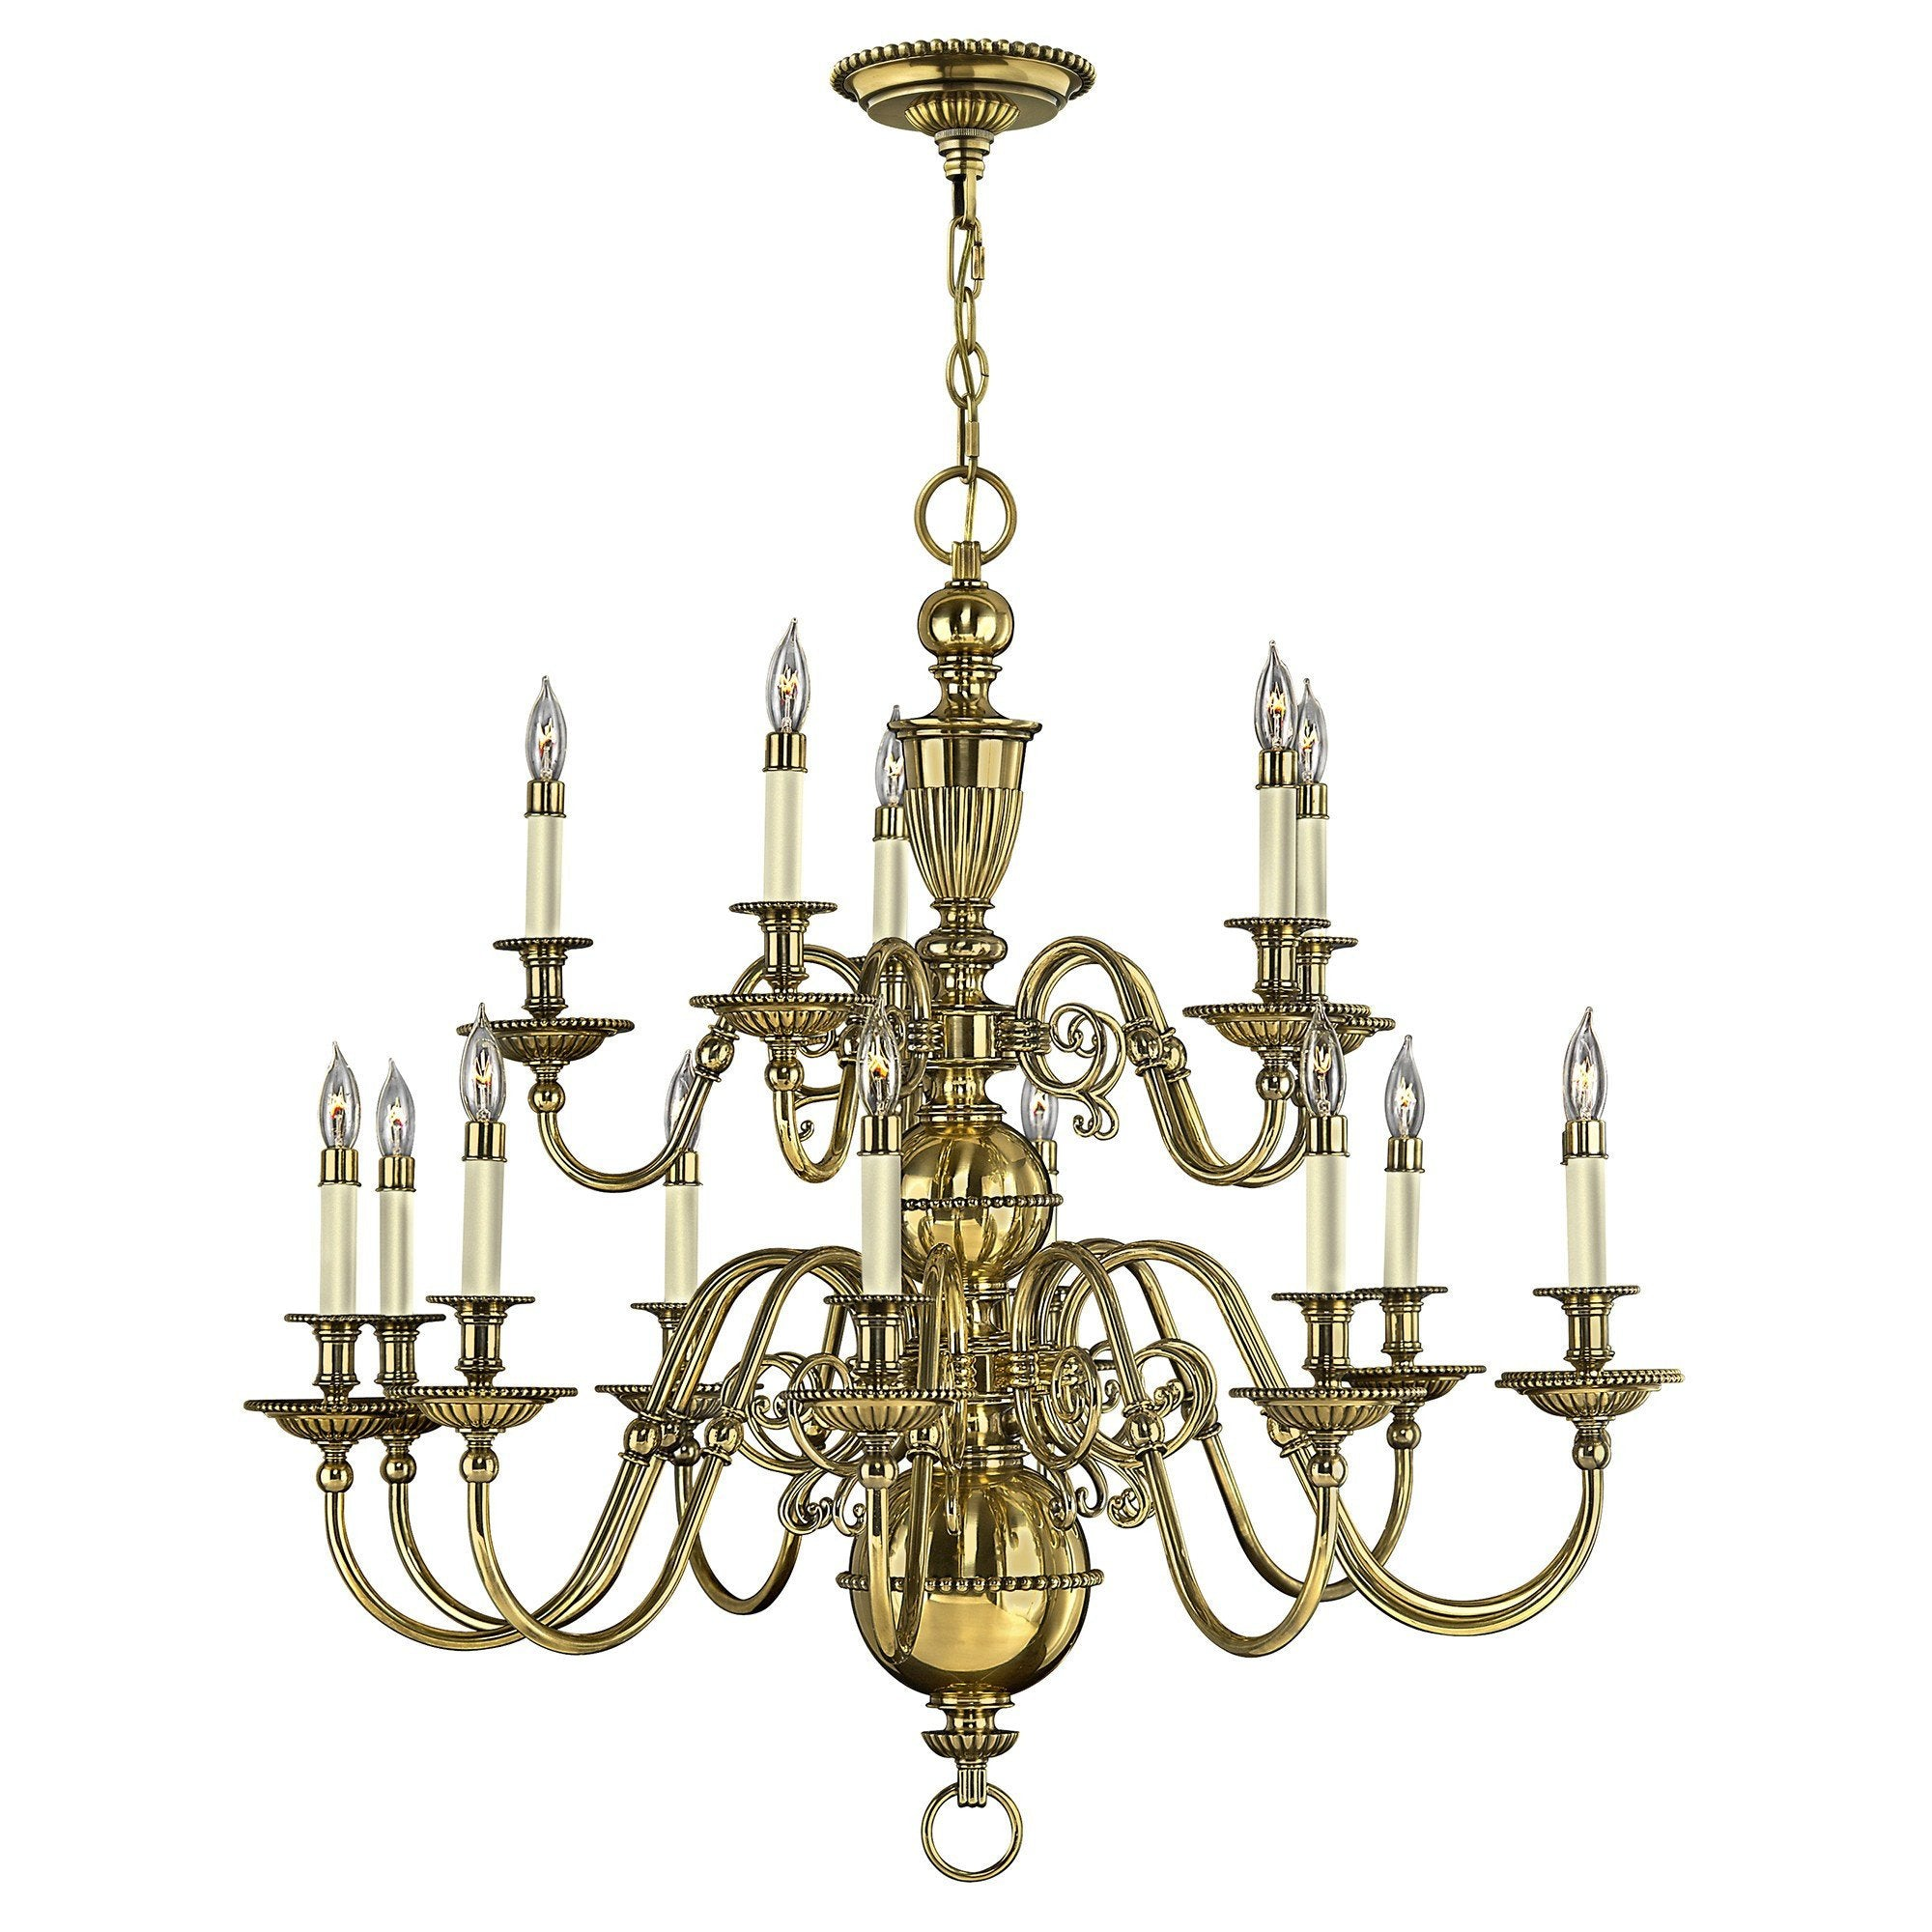 Hinkley Cambridge 15 Light Chandelier - London Lighting - 1